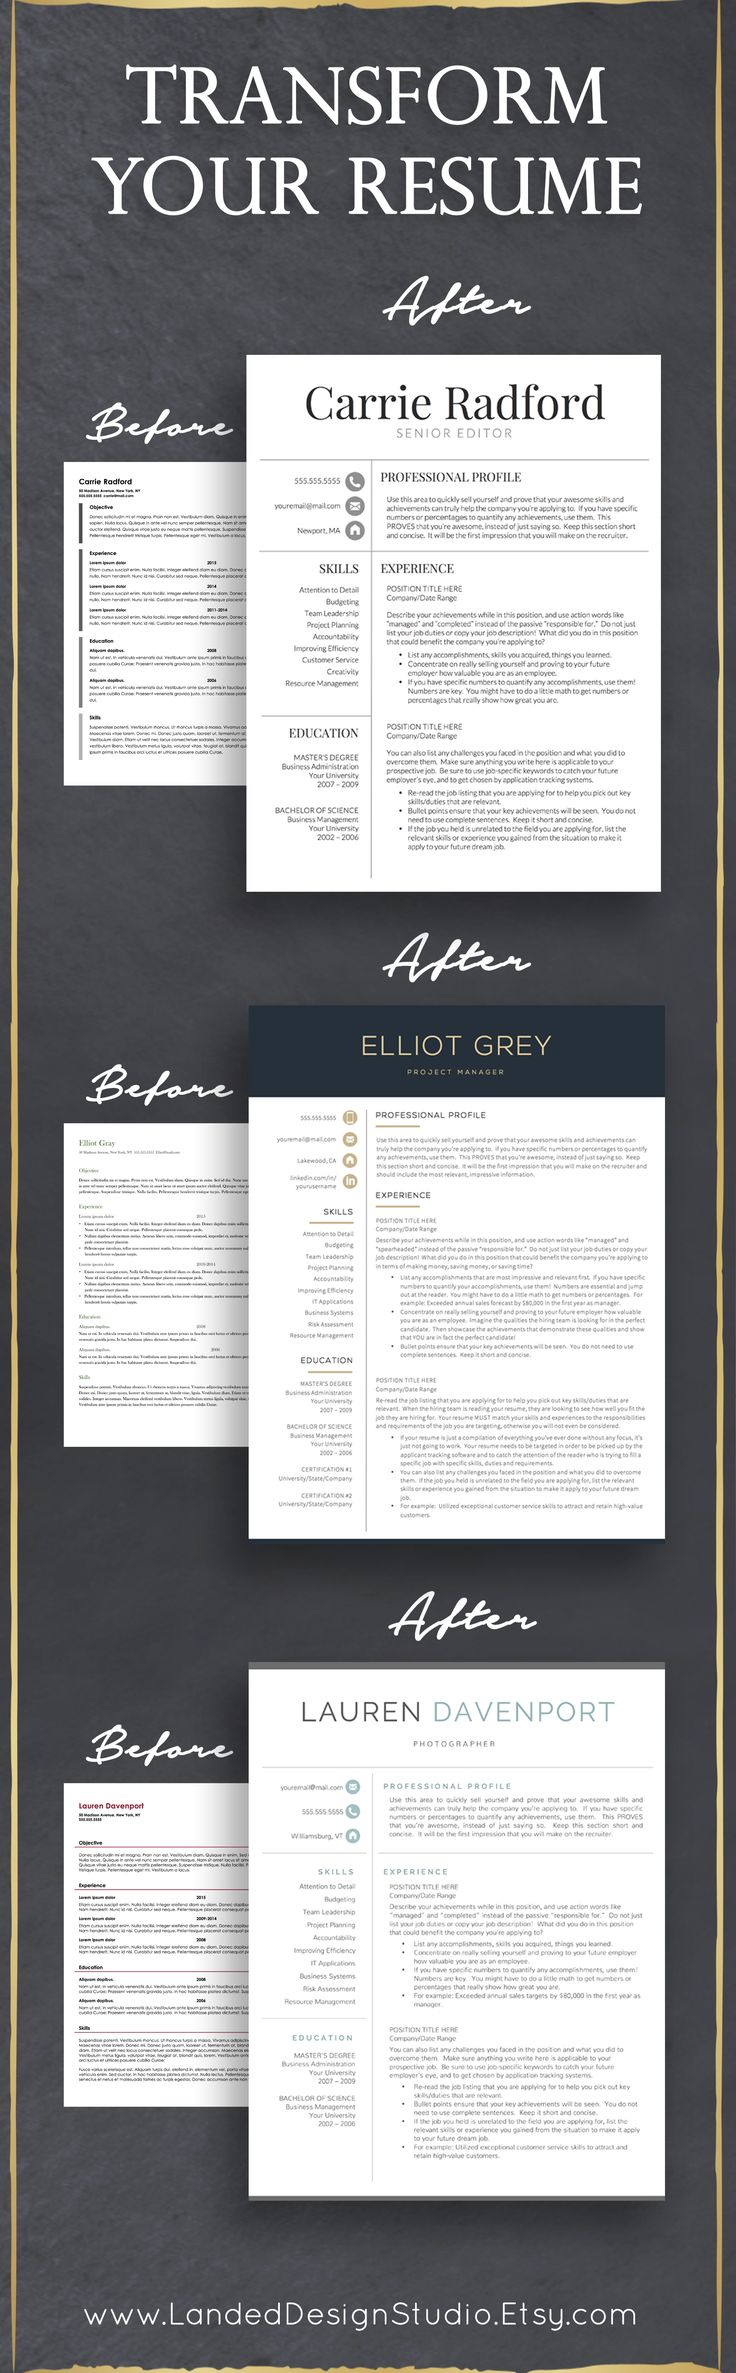 Completely transform your resume with just a